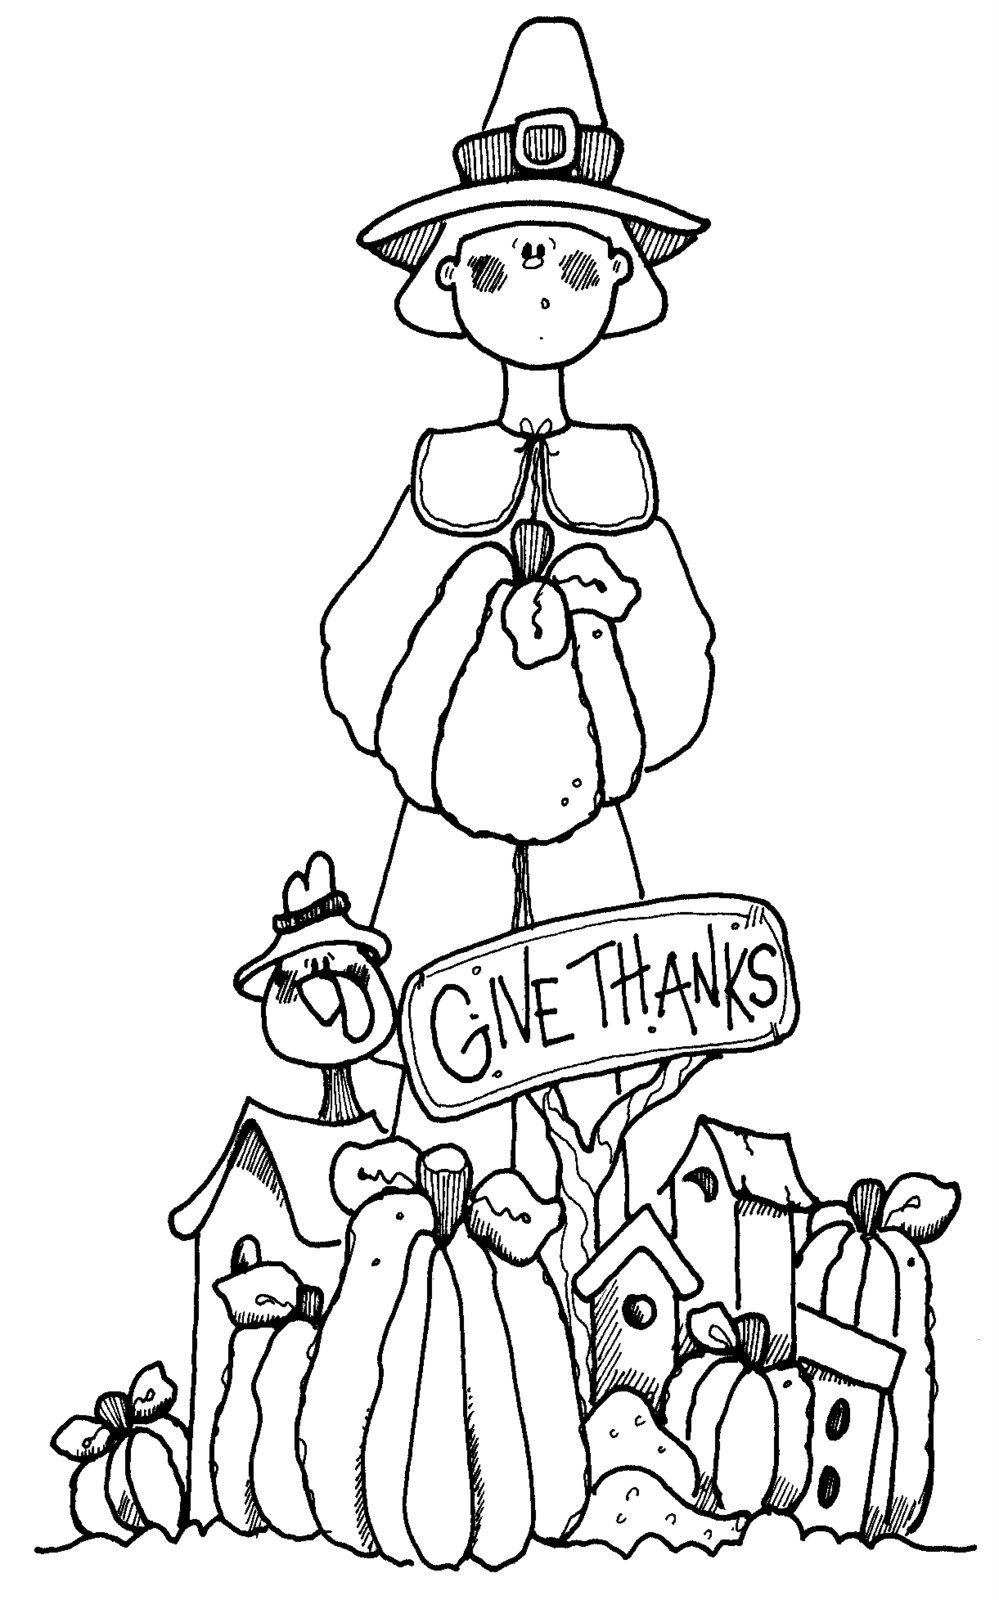 Giving Thanks Thanksgiving coloring pages, Free